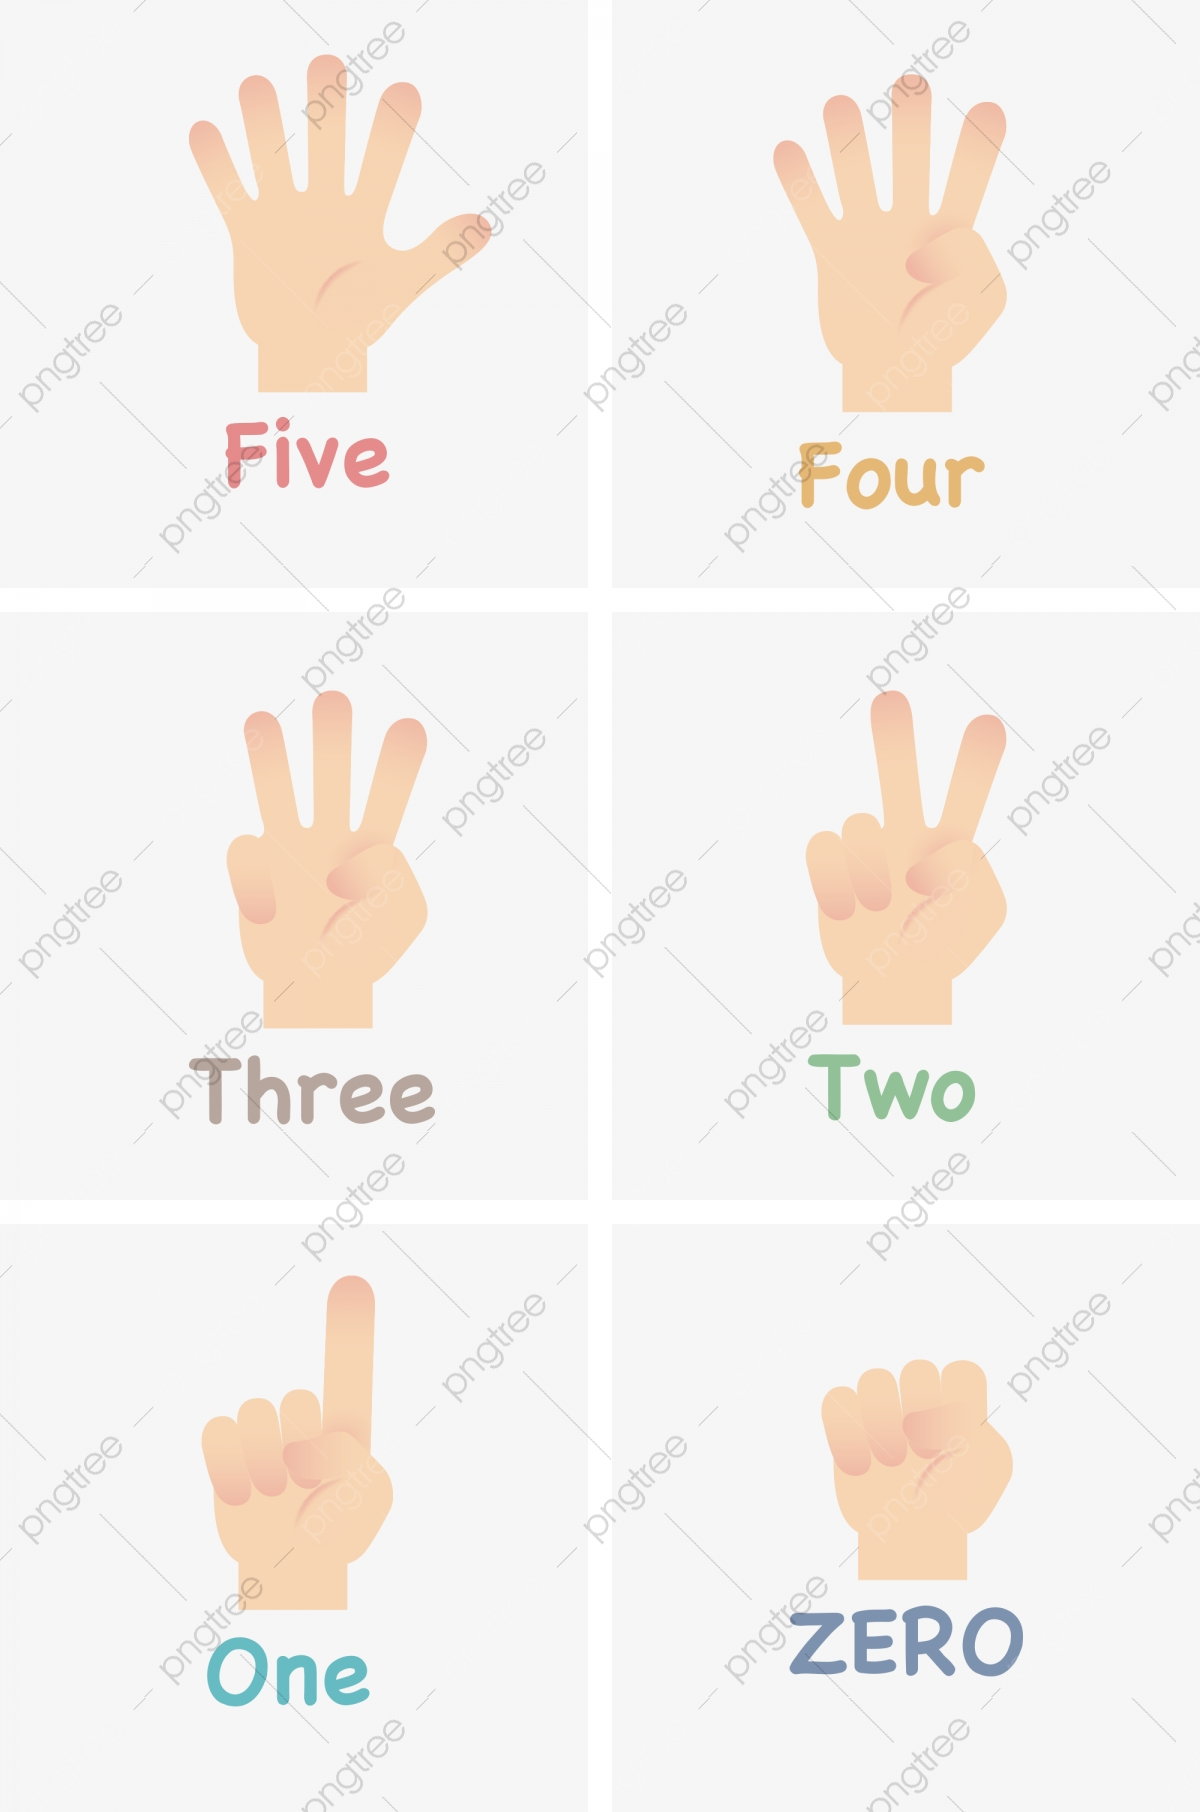 Hand With Three Fingers Up   Clip art, Art images, Image